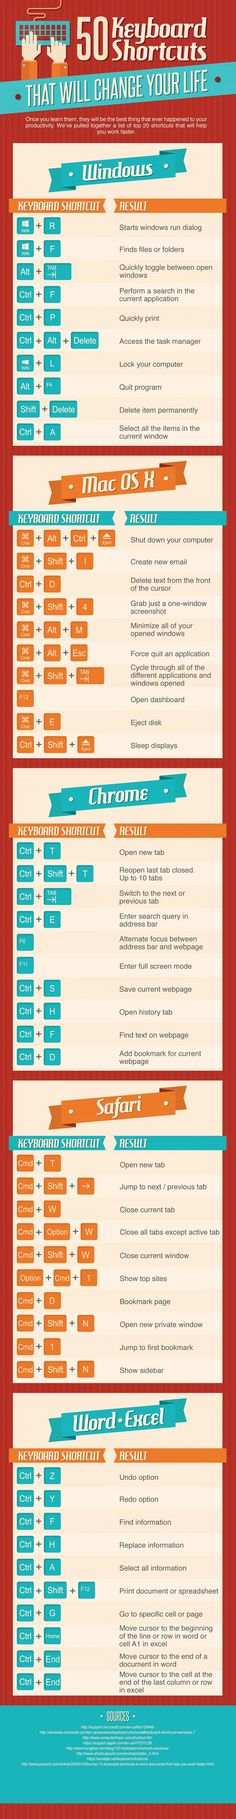 50 Keyboard Shortcuts to Make Your Life Easier | Computers & Internet - BabaMail